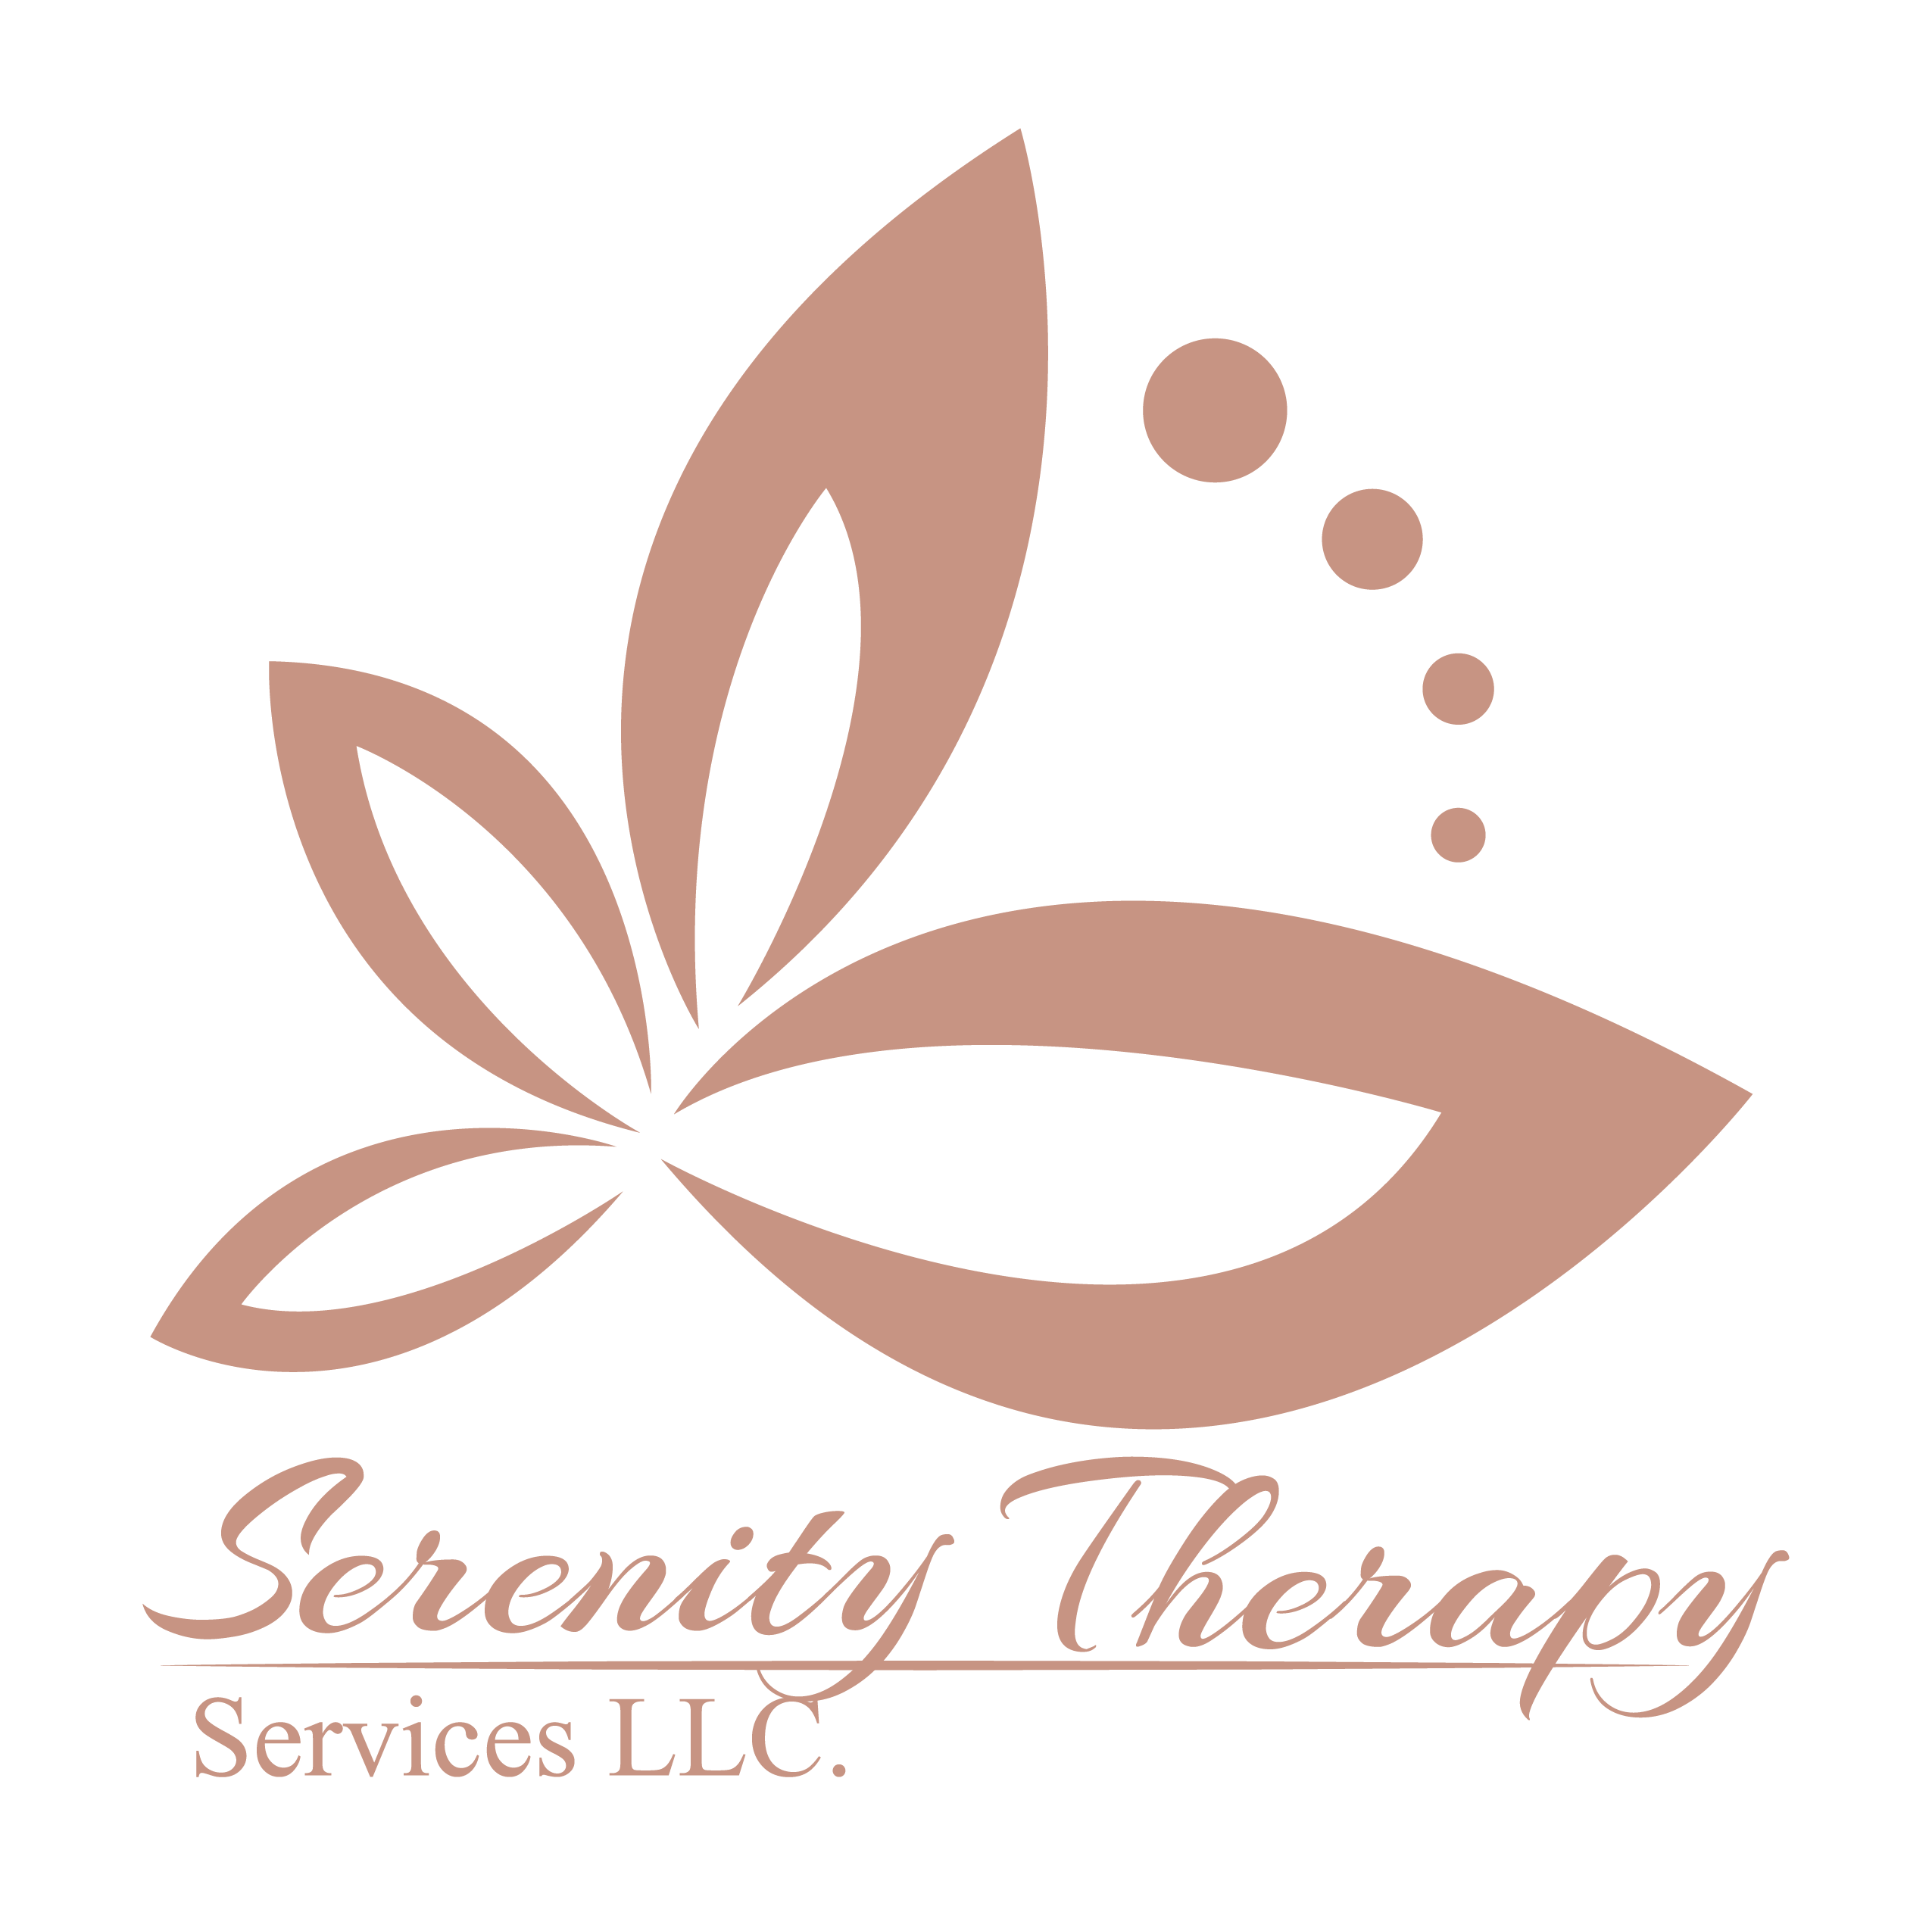 Serenity Therapy Services